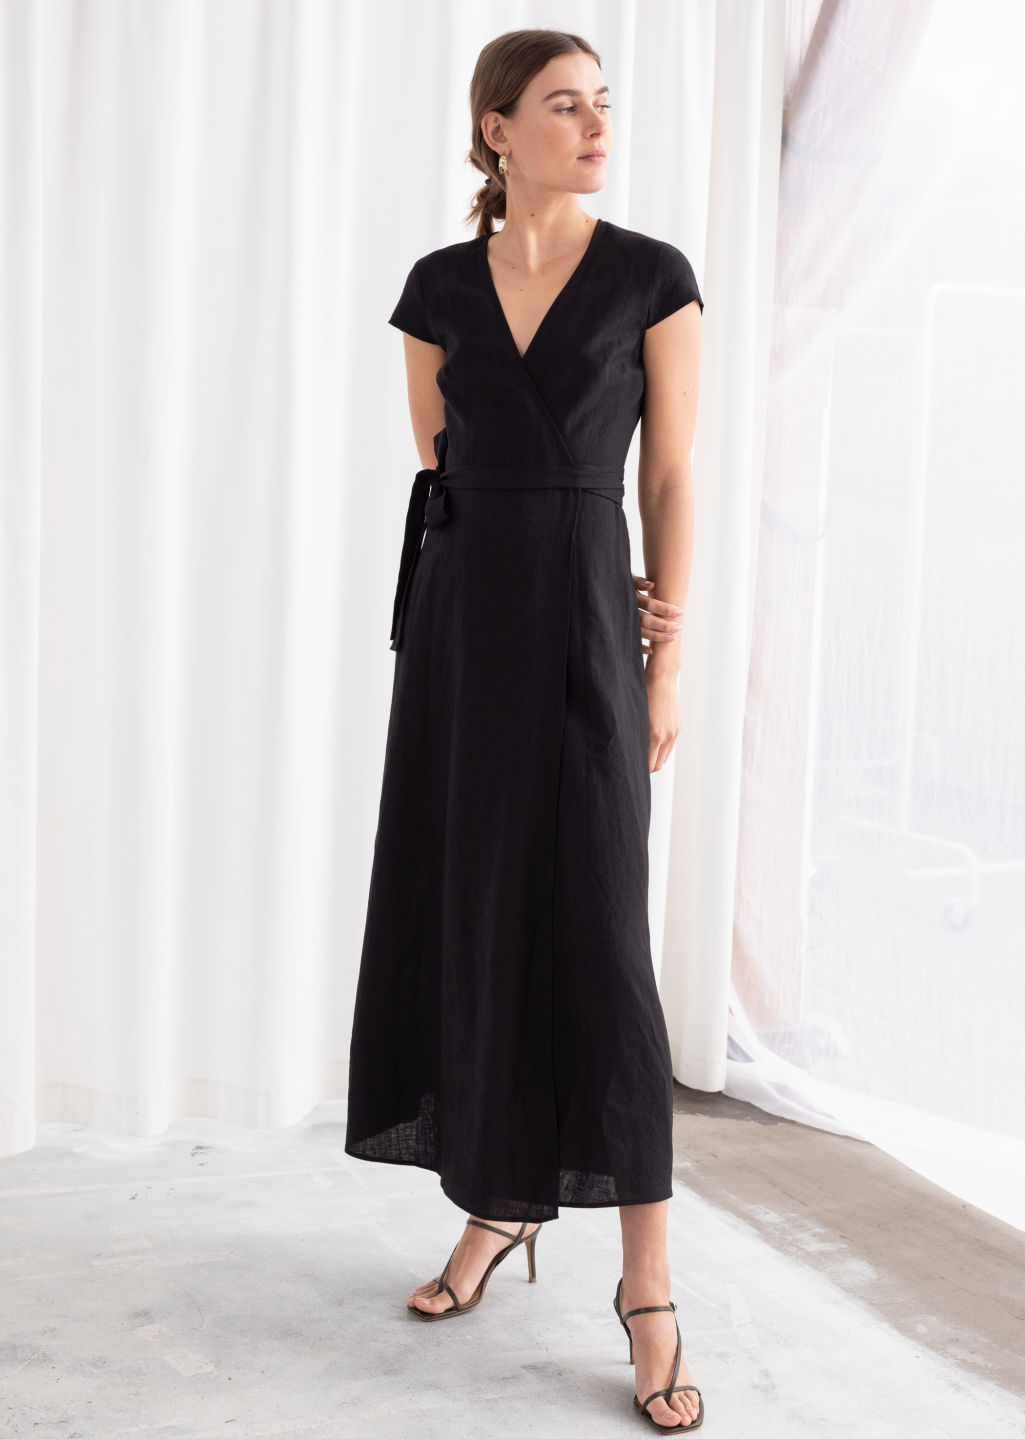 Linen Midi Wrap Dress - Black - Midi dresses -   Other Stories